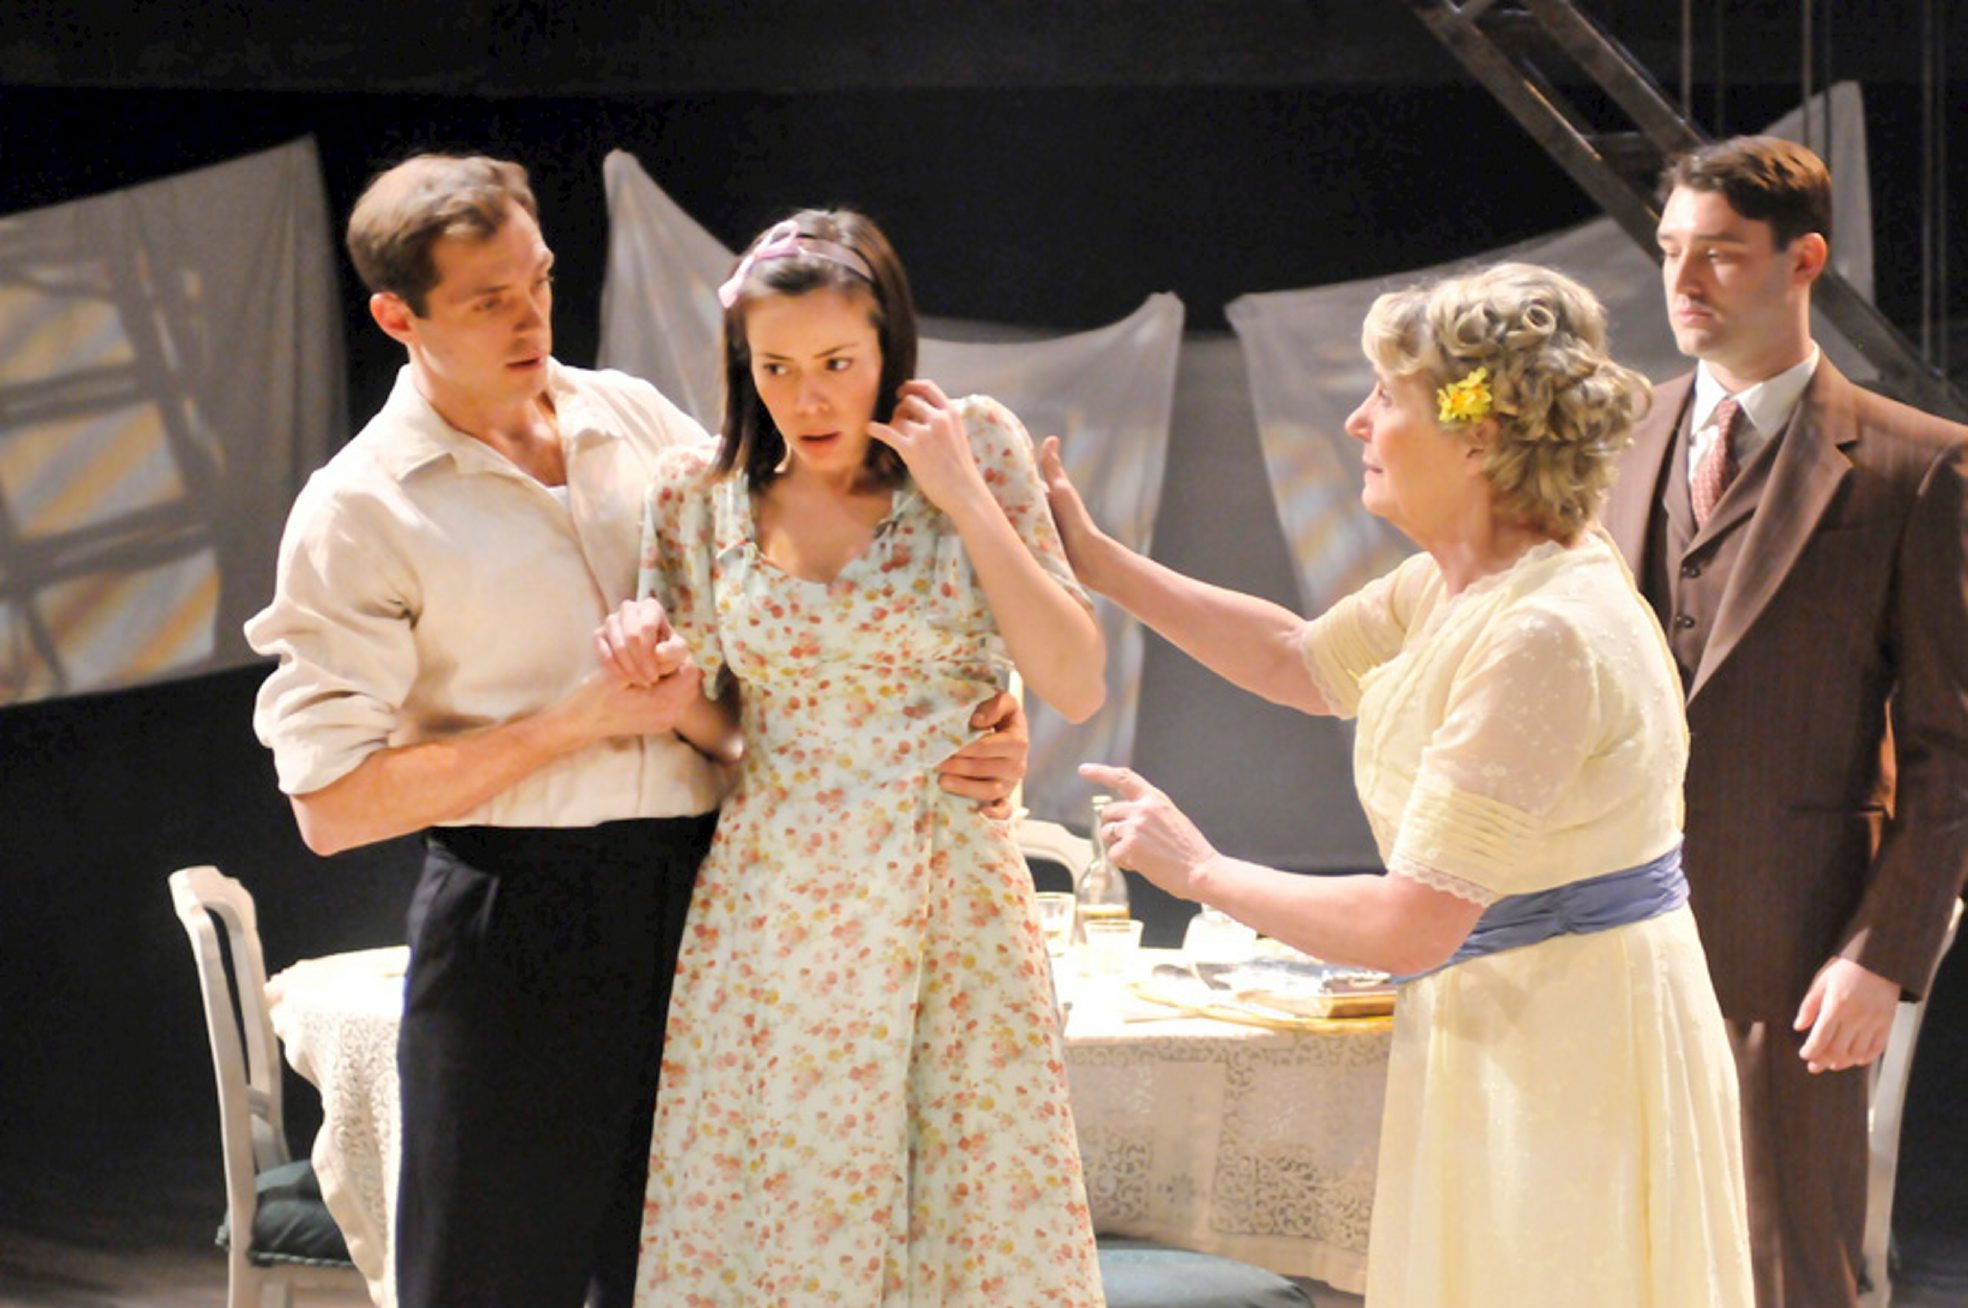 Octagon theatre gets seven nominations in Manchester Theatre Awards